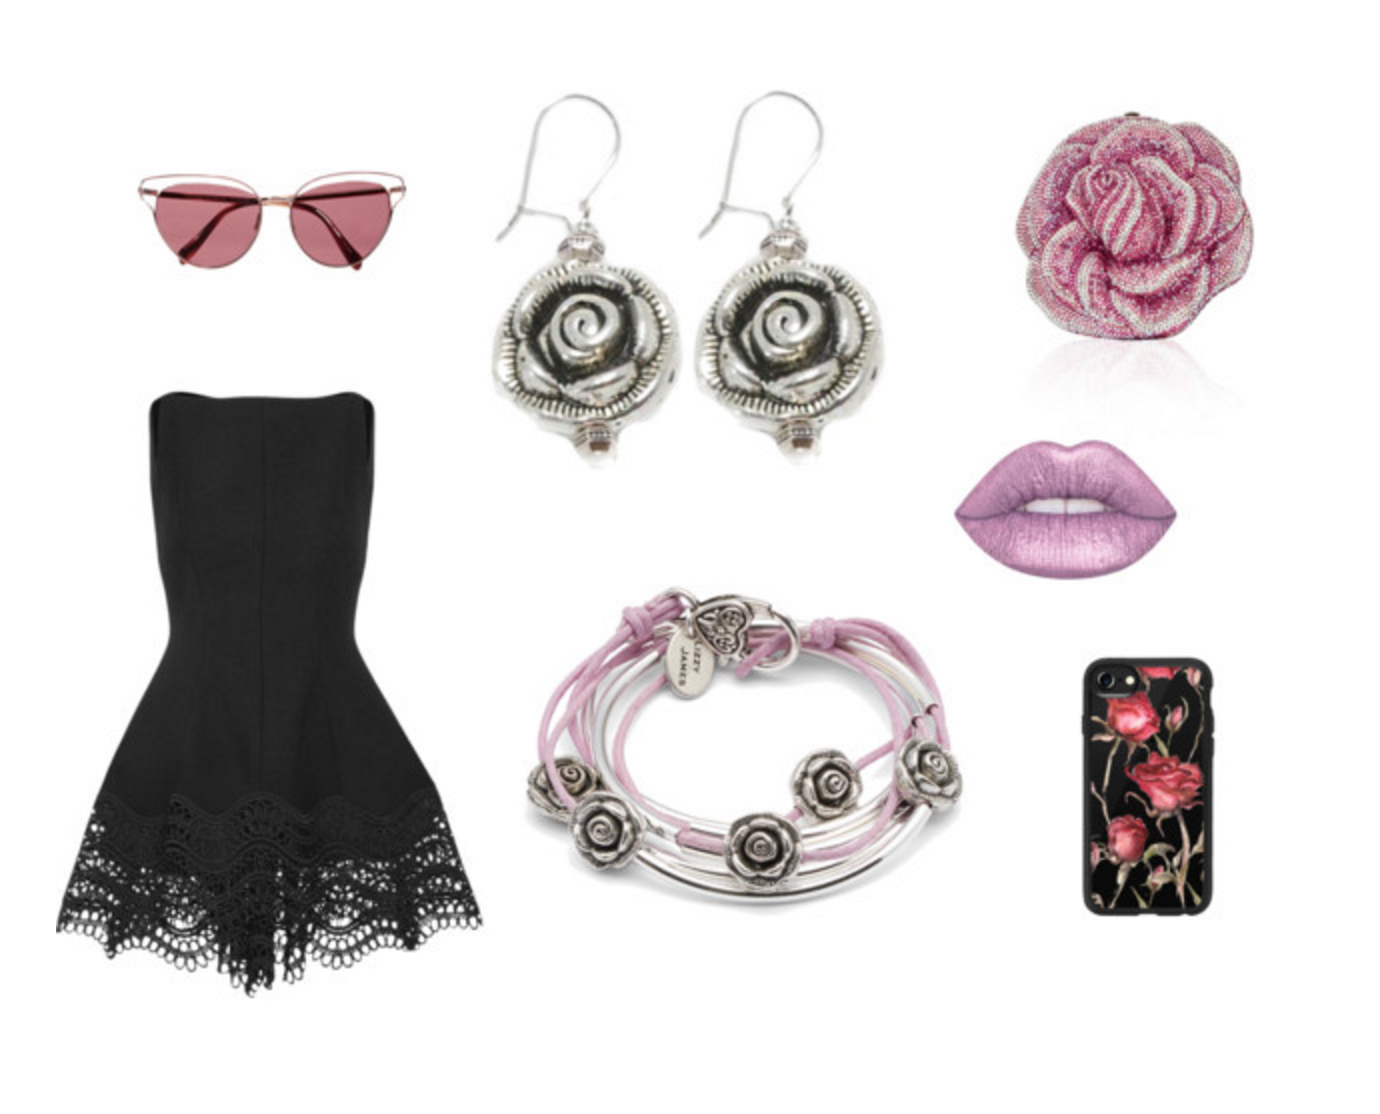 The  Rose Earrings  are fun, flirty, and stylish. See the whole set  here .